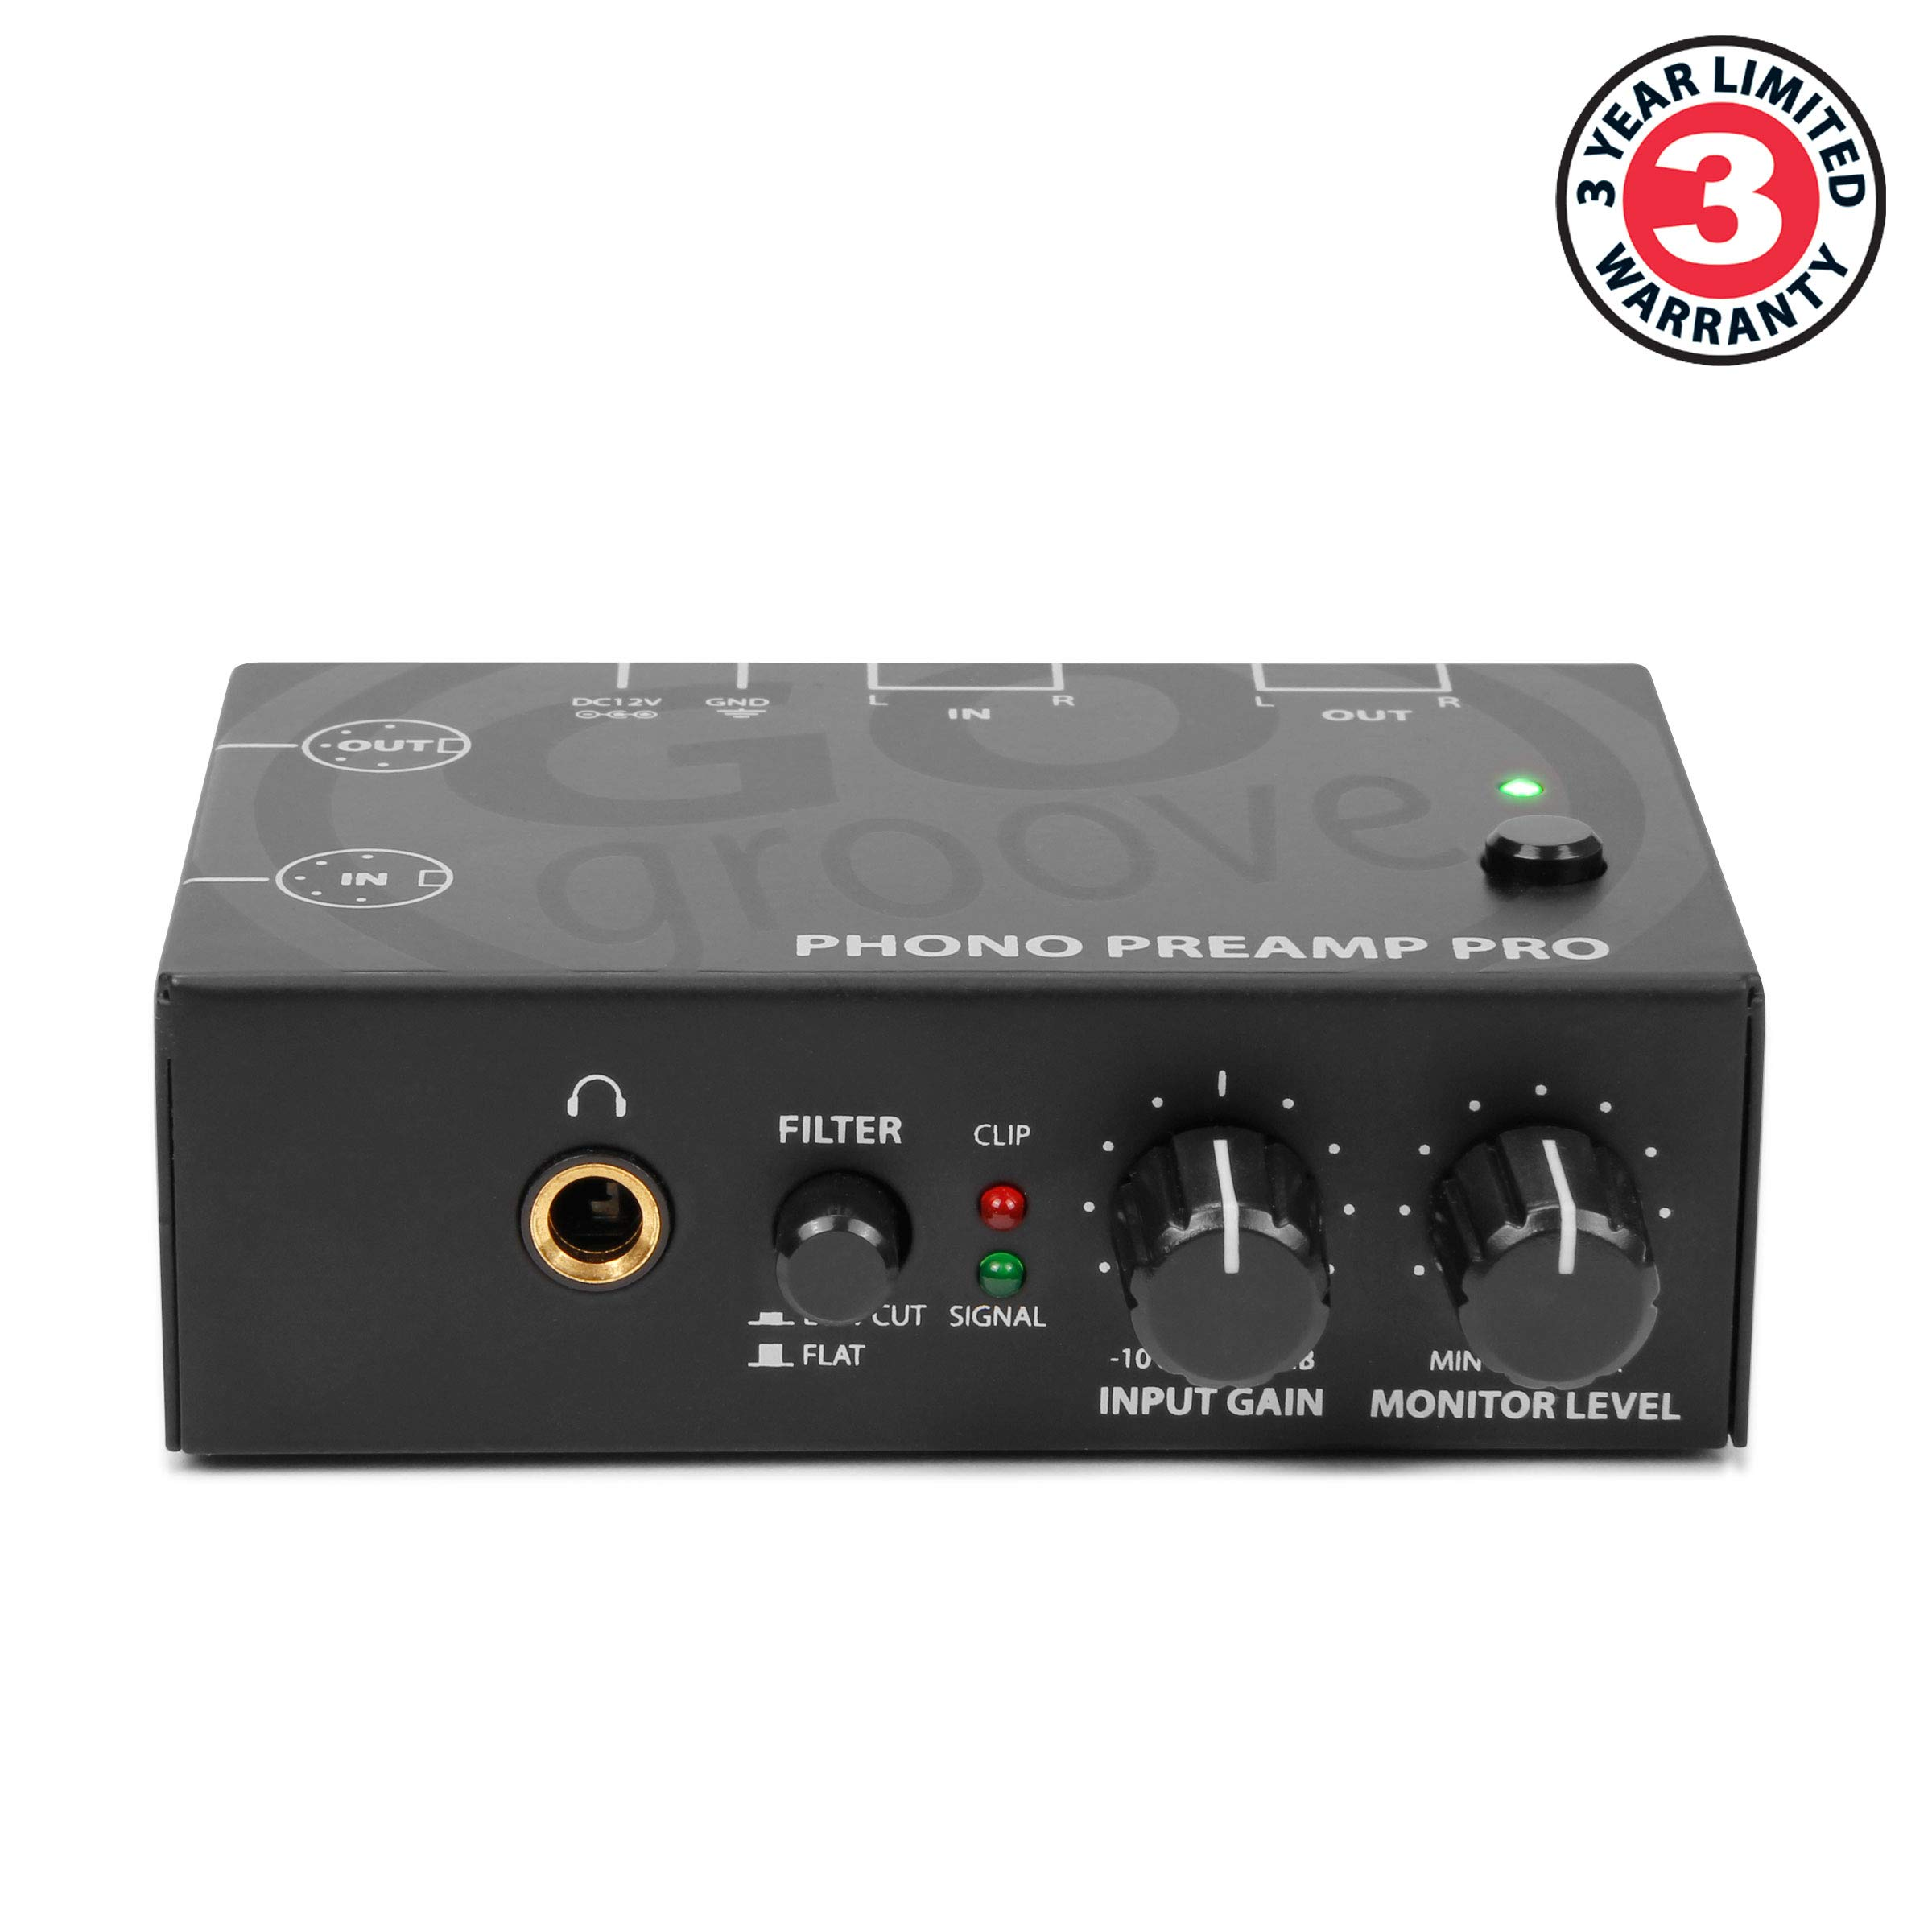 GOgroove Phono Preamp Pro Preamplifier with RCA Input/Output, DIN Connection, RIAA Equalization, 12V AC Adapter - Compatible with Vinyl Record Players, Turntables, Stereos, DJ Mixers by GOgroove (Image #2)